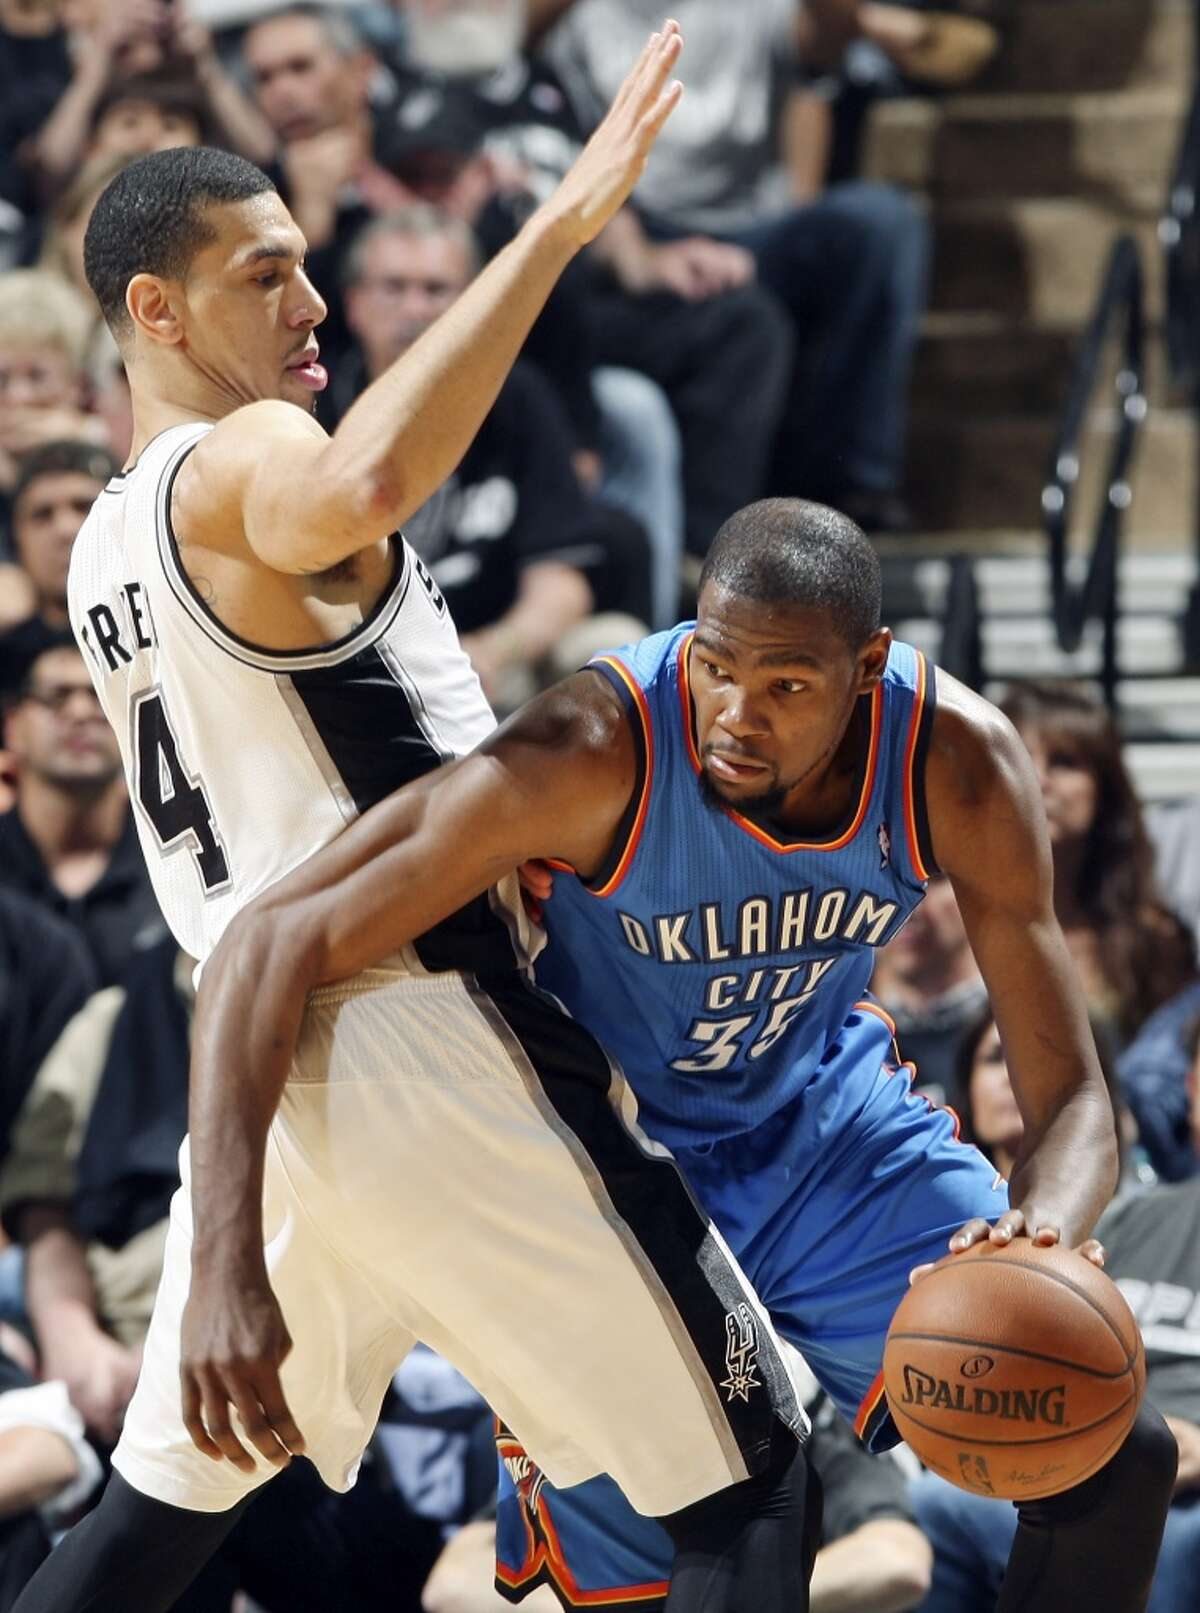 San Antonio Spurs' Danny Green defends Oklahoma City Thunder's Kevin Durant during second half action of Game 1 in the Western Conference Finals Monday May 19, 2014 at the AT&T Center. The Spurs won 122-105.